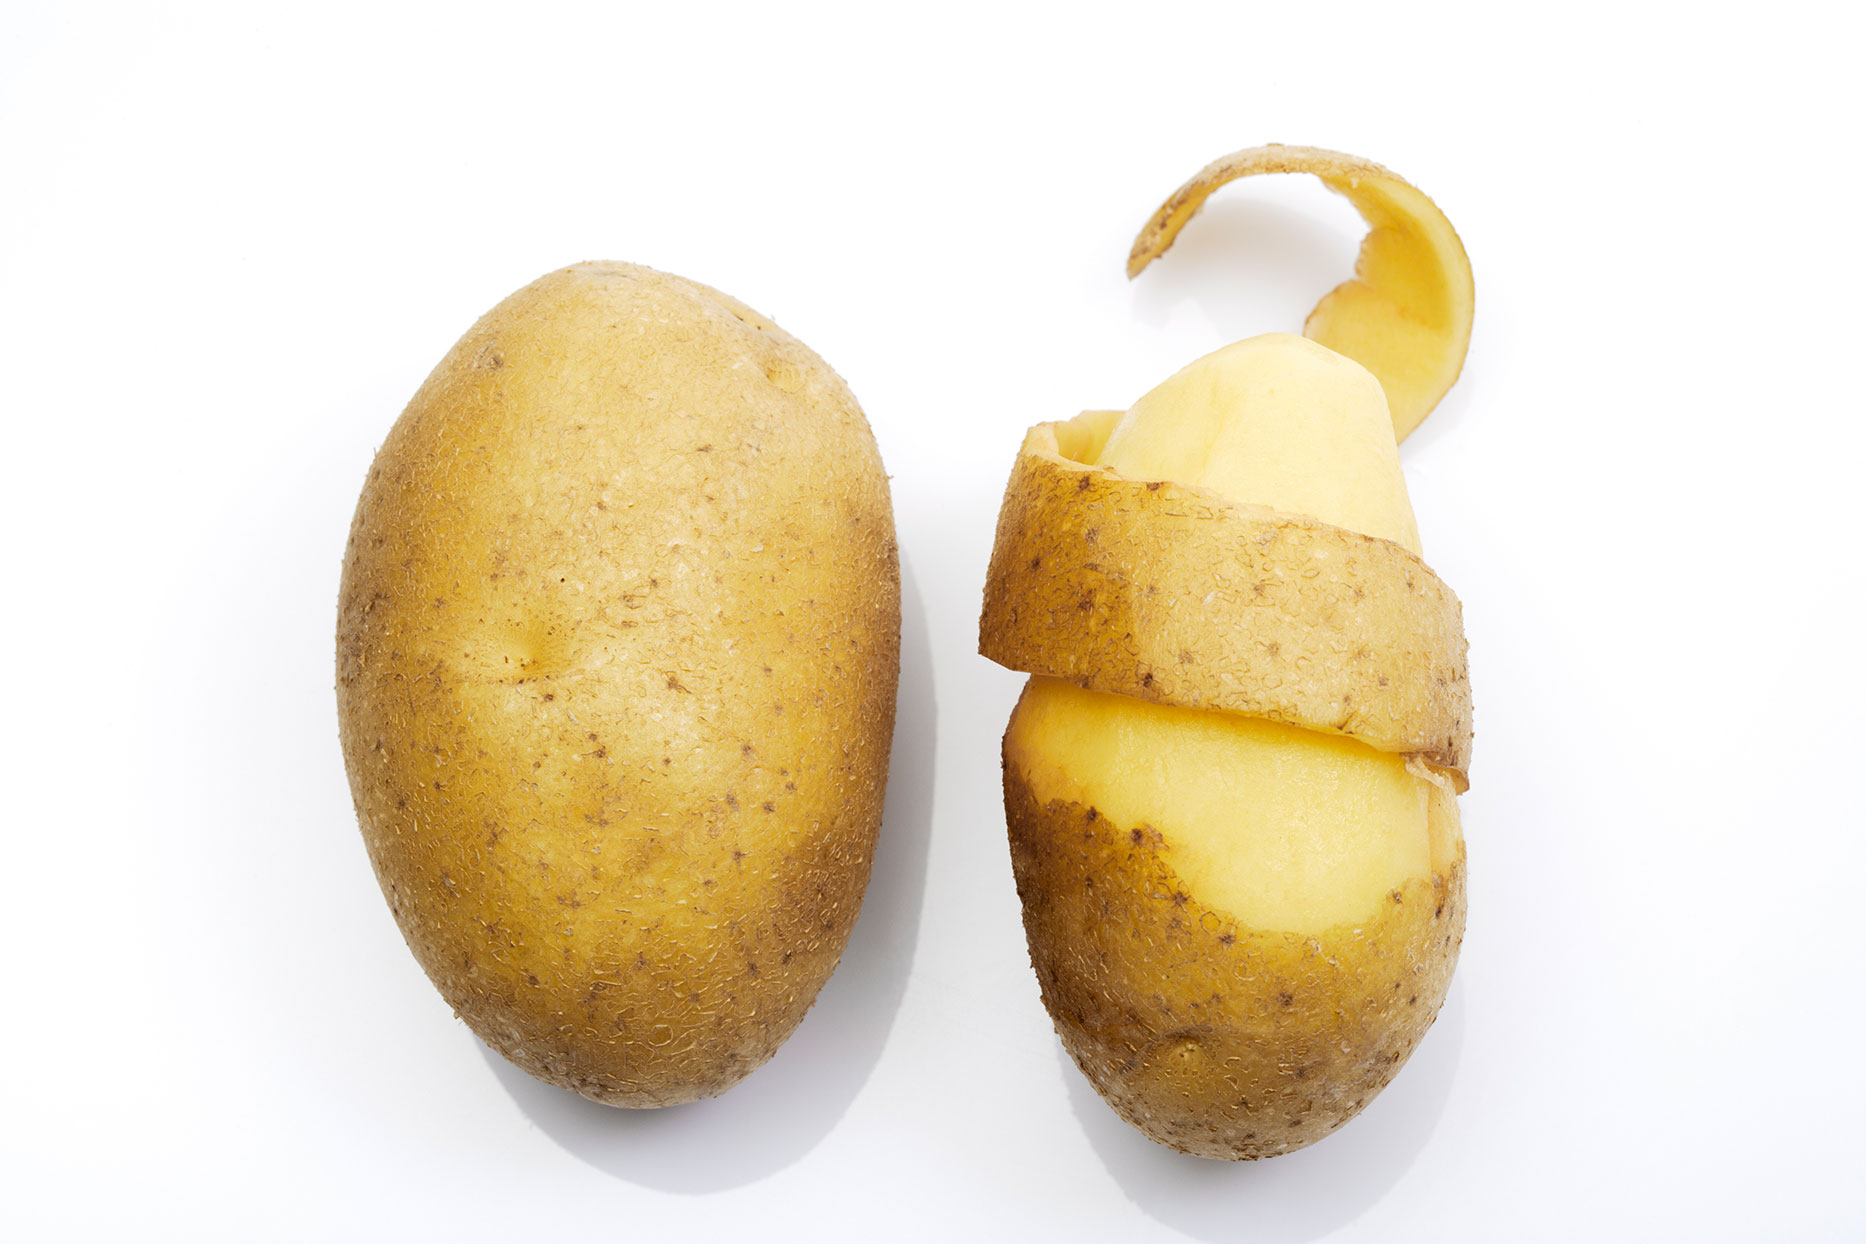 2 potatoes - one half peeled